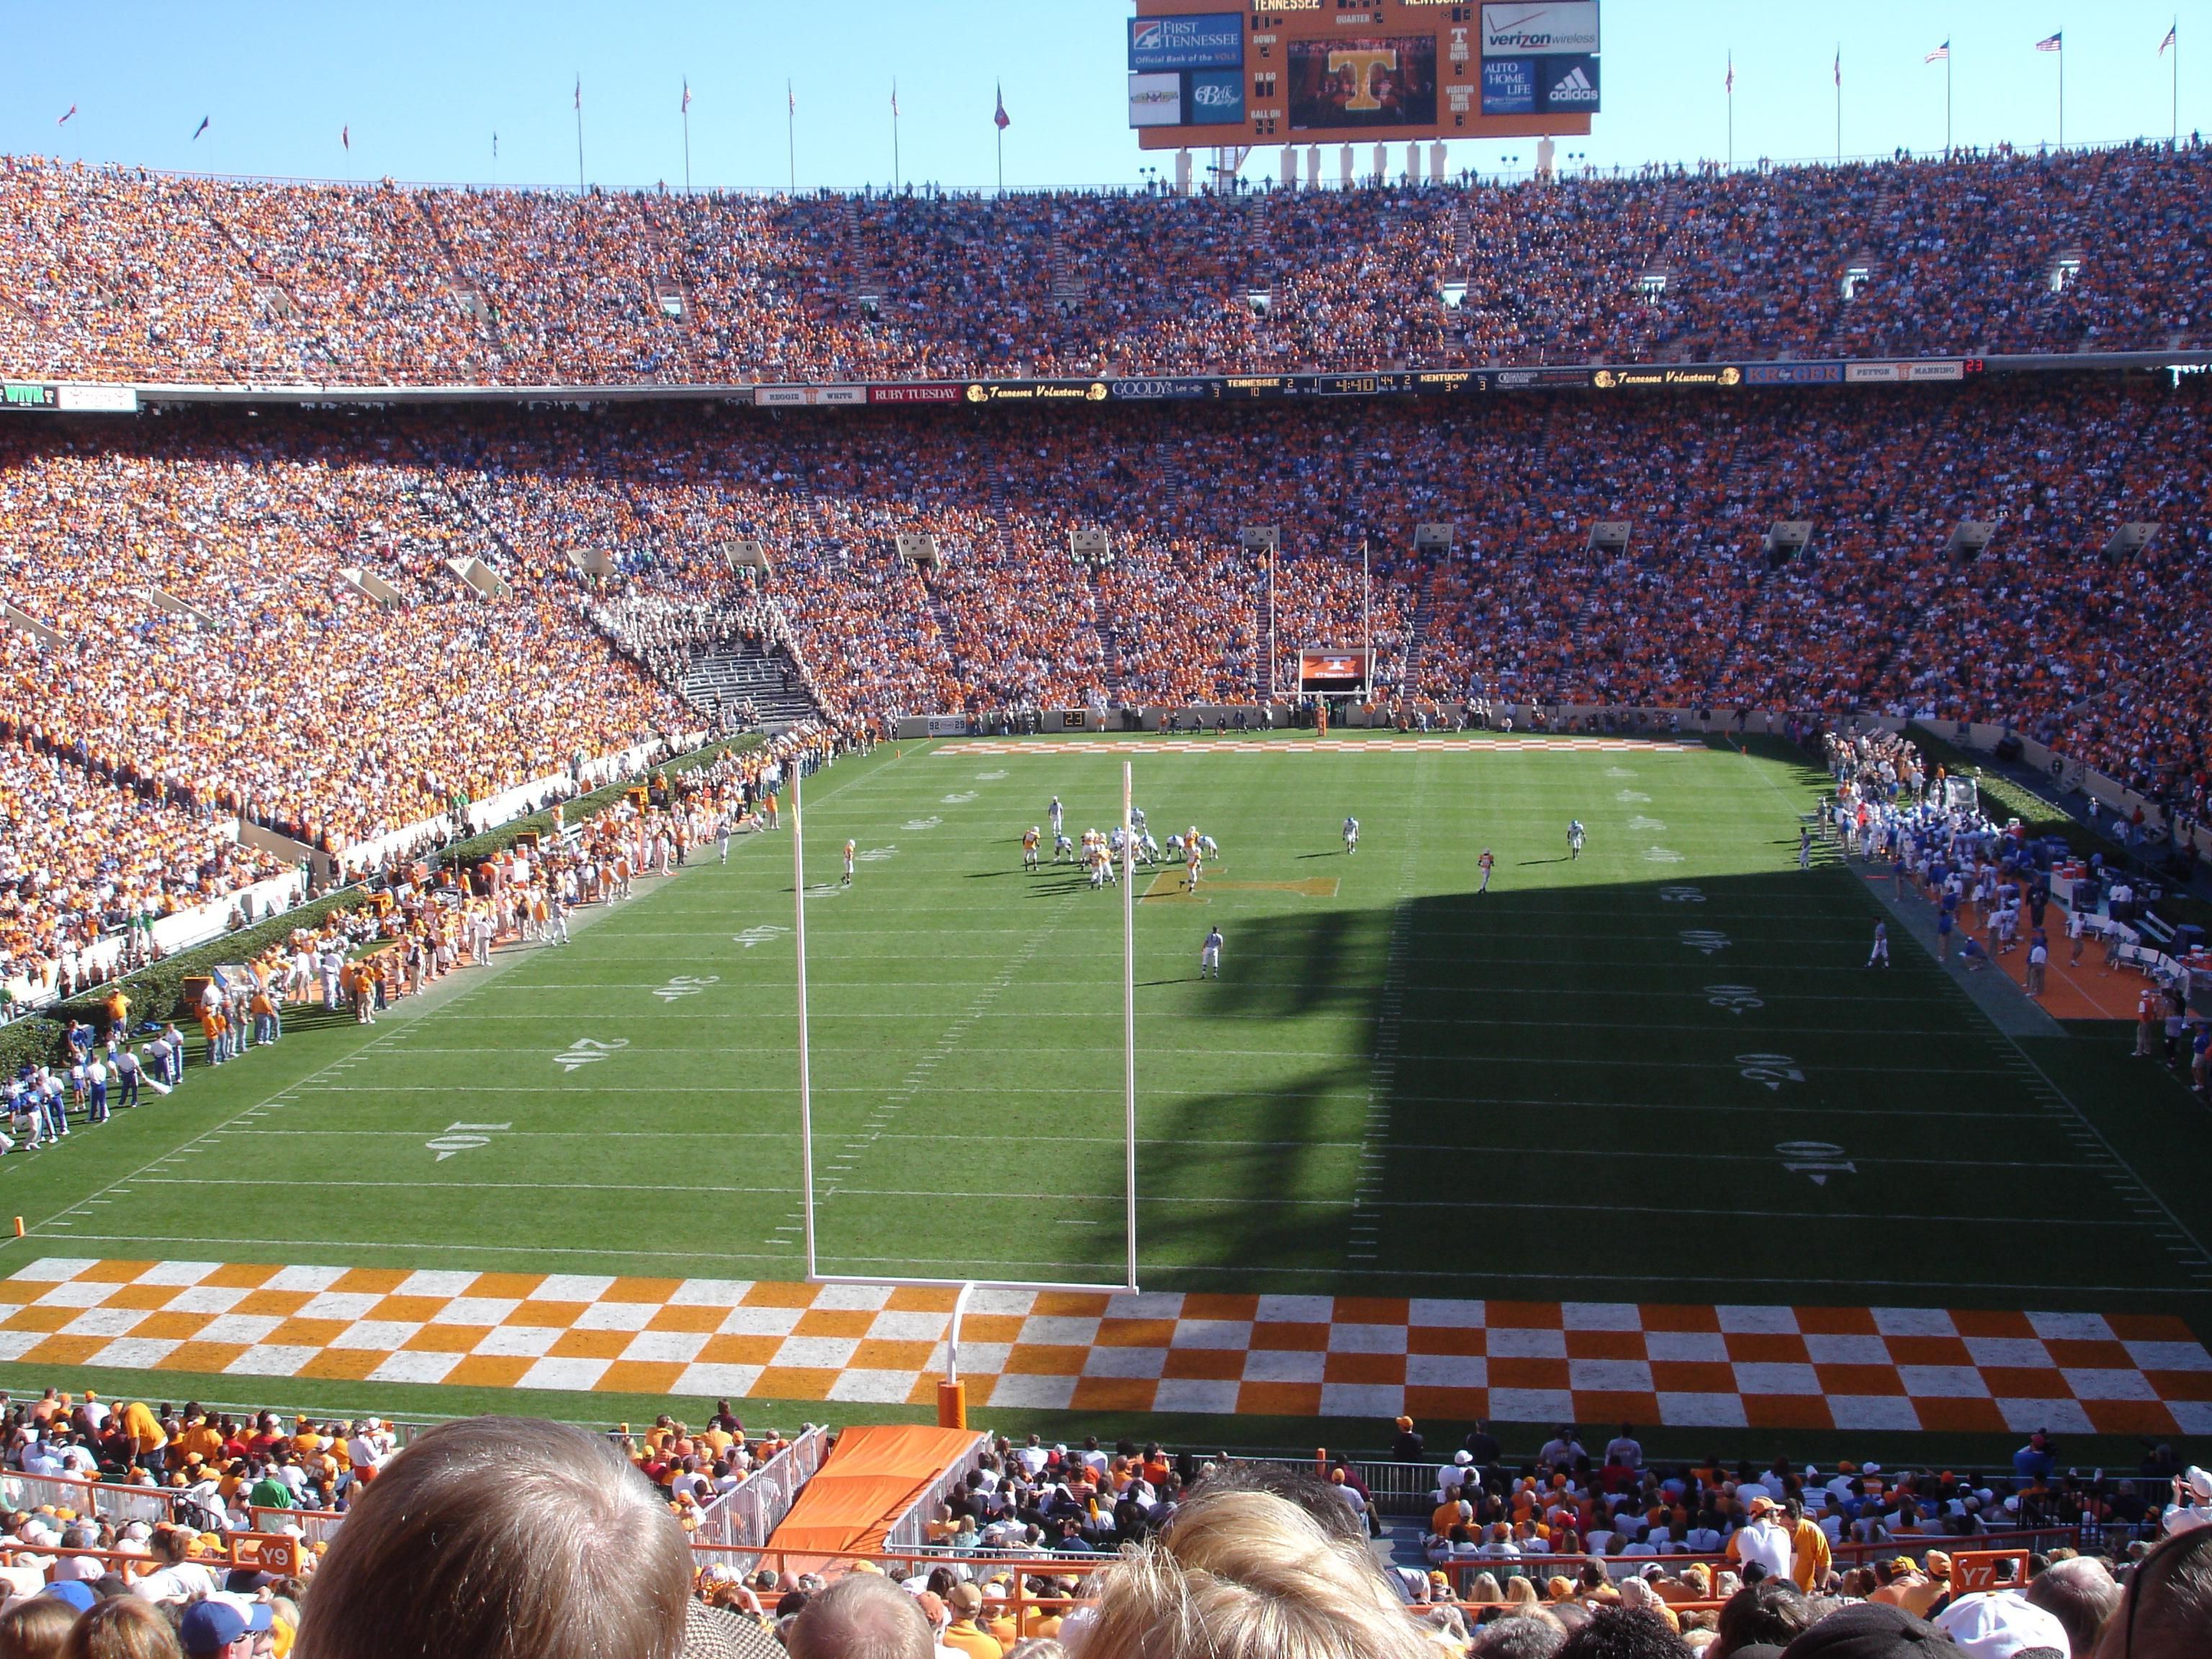 Enjoy a football game at Neyland Stadium! Go Vols!